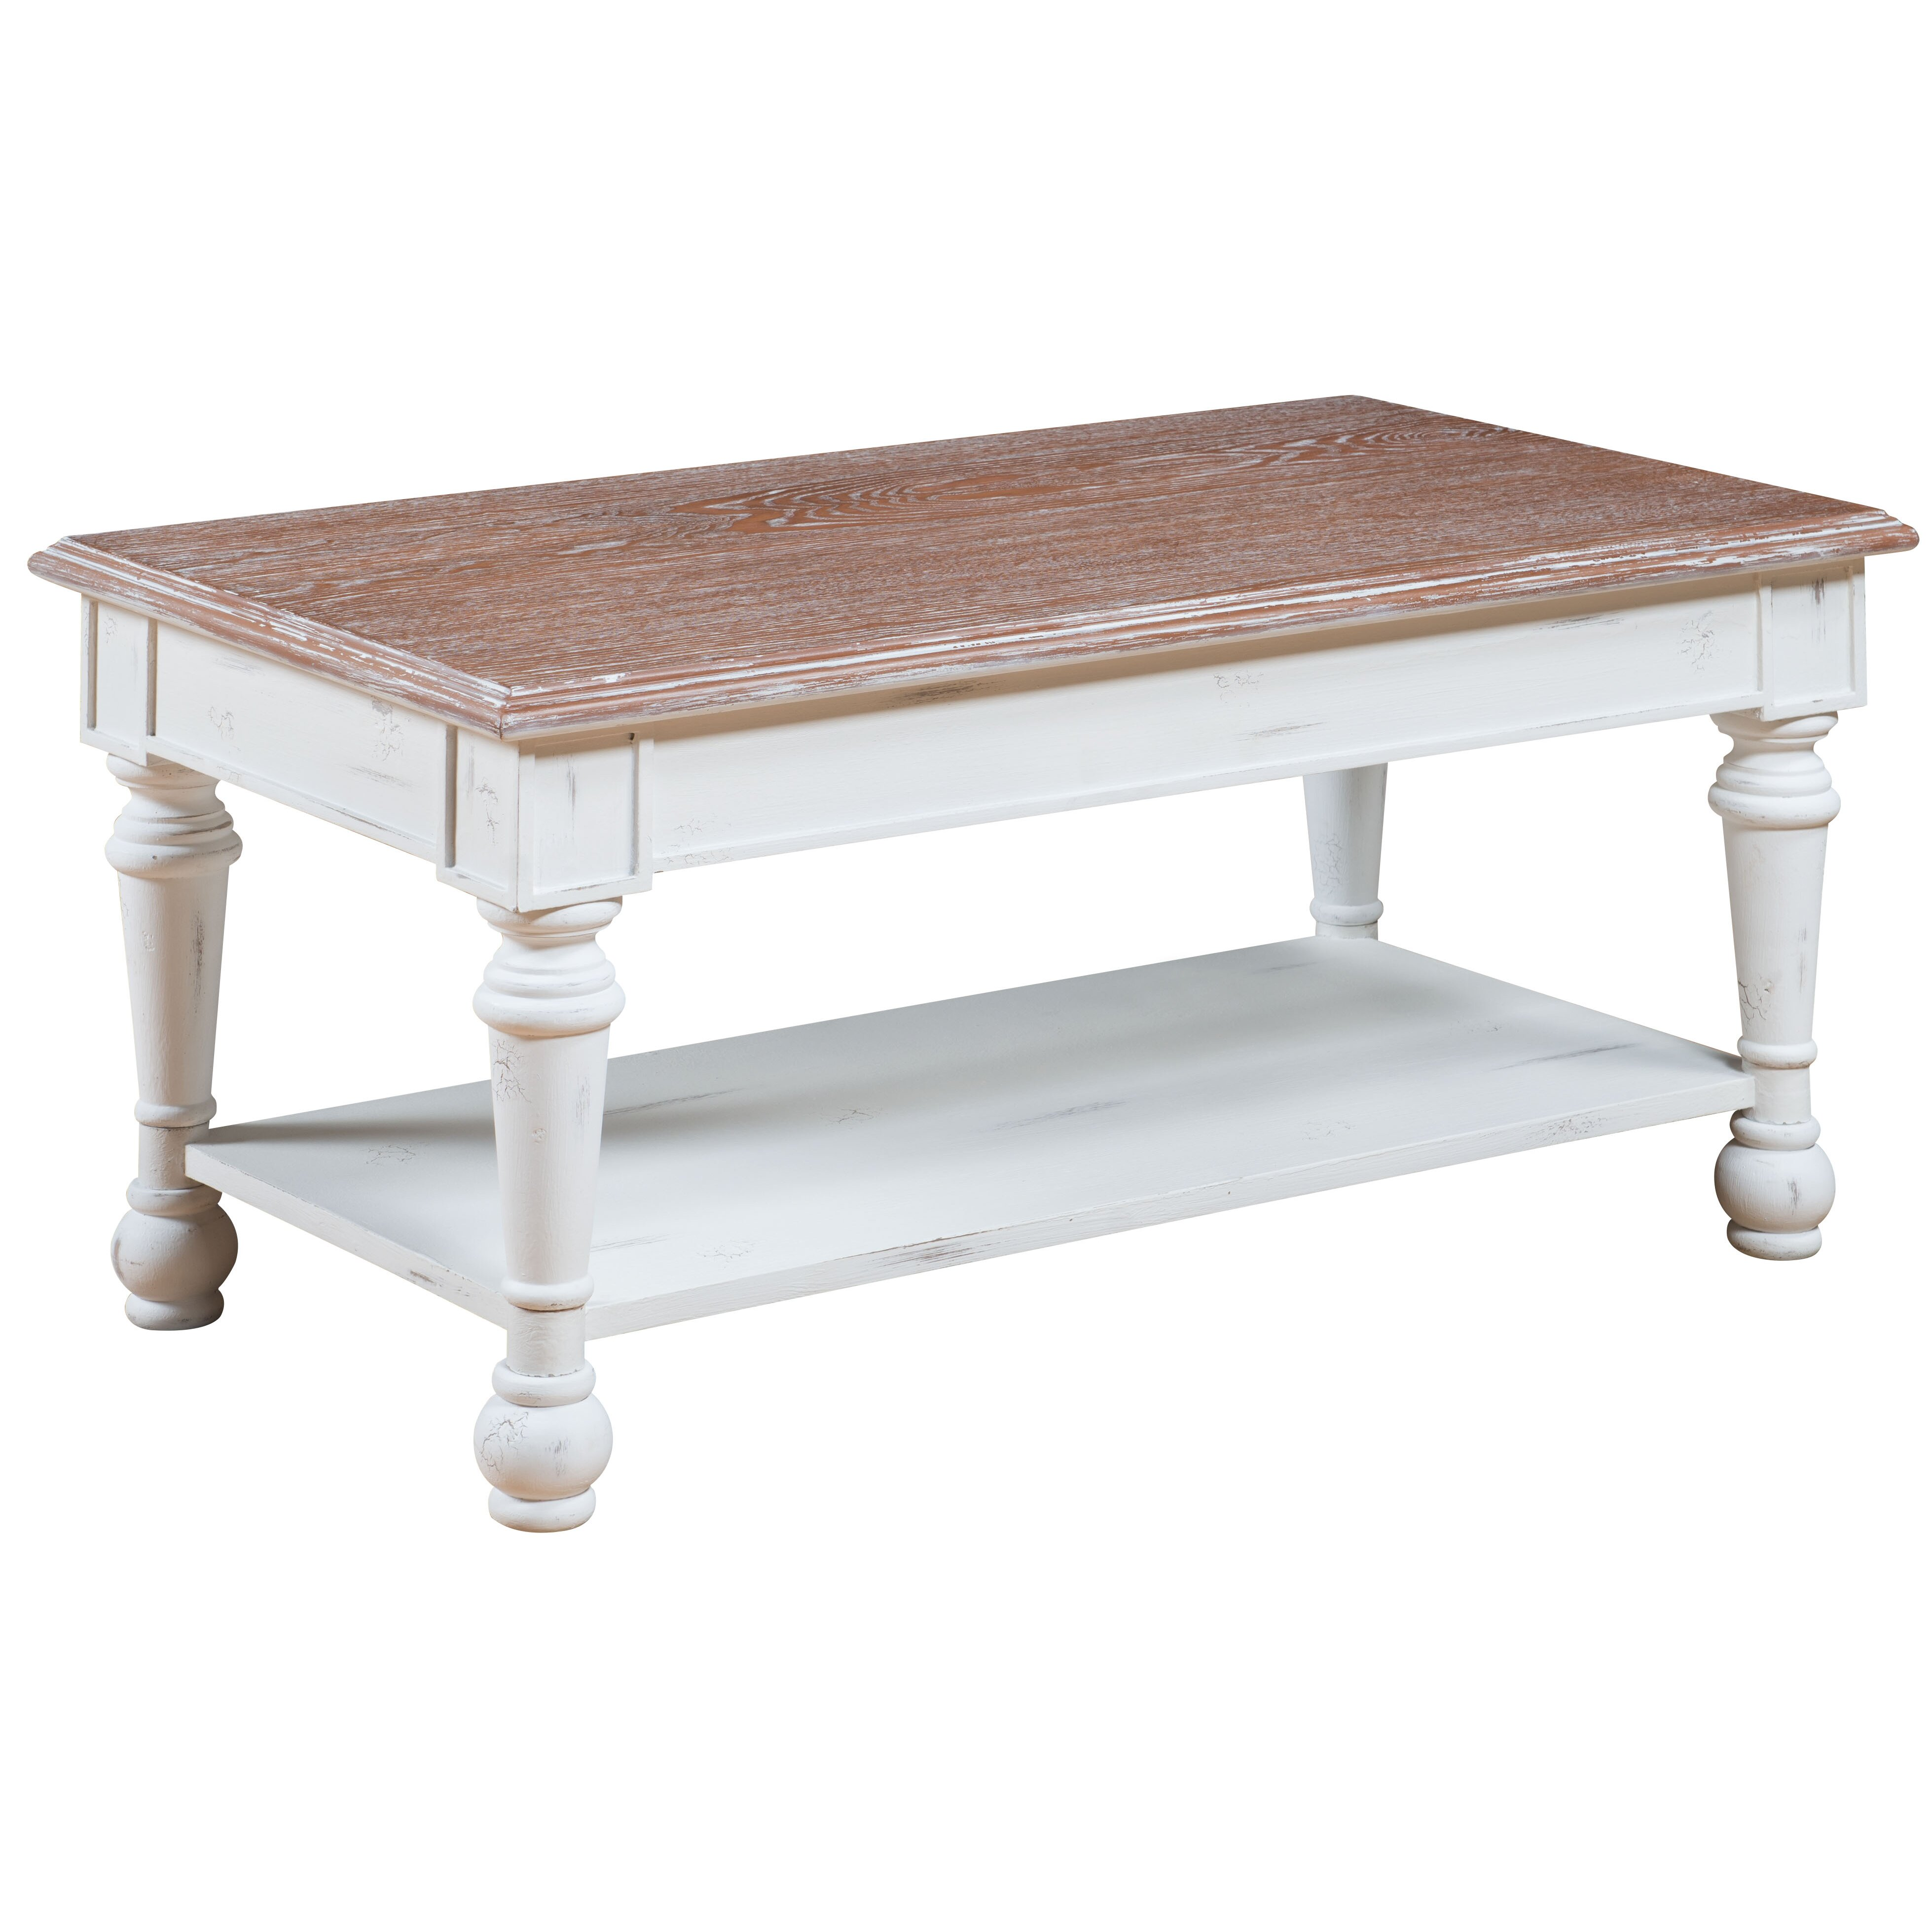 Gail 39 S Accents Cottage Coffee Table Reviews Wayfair